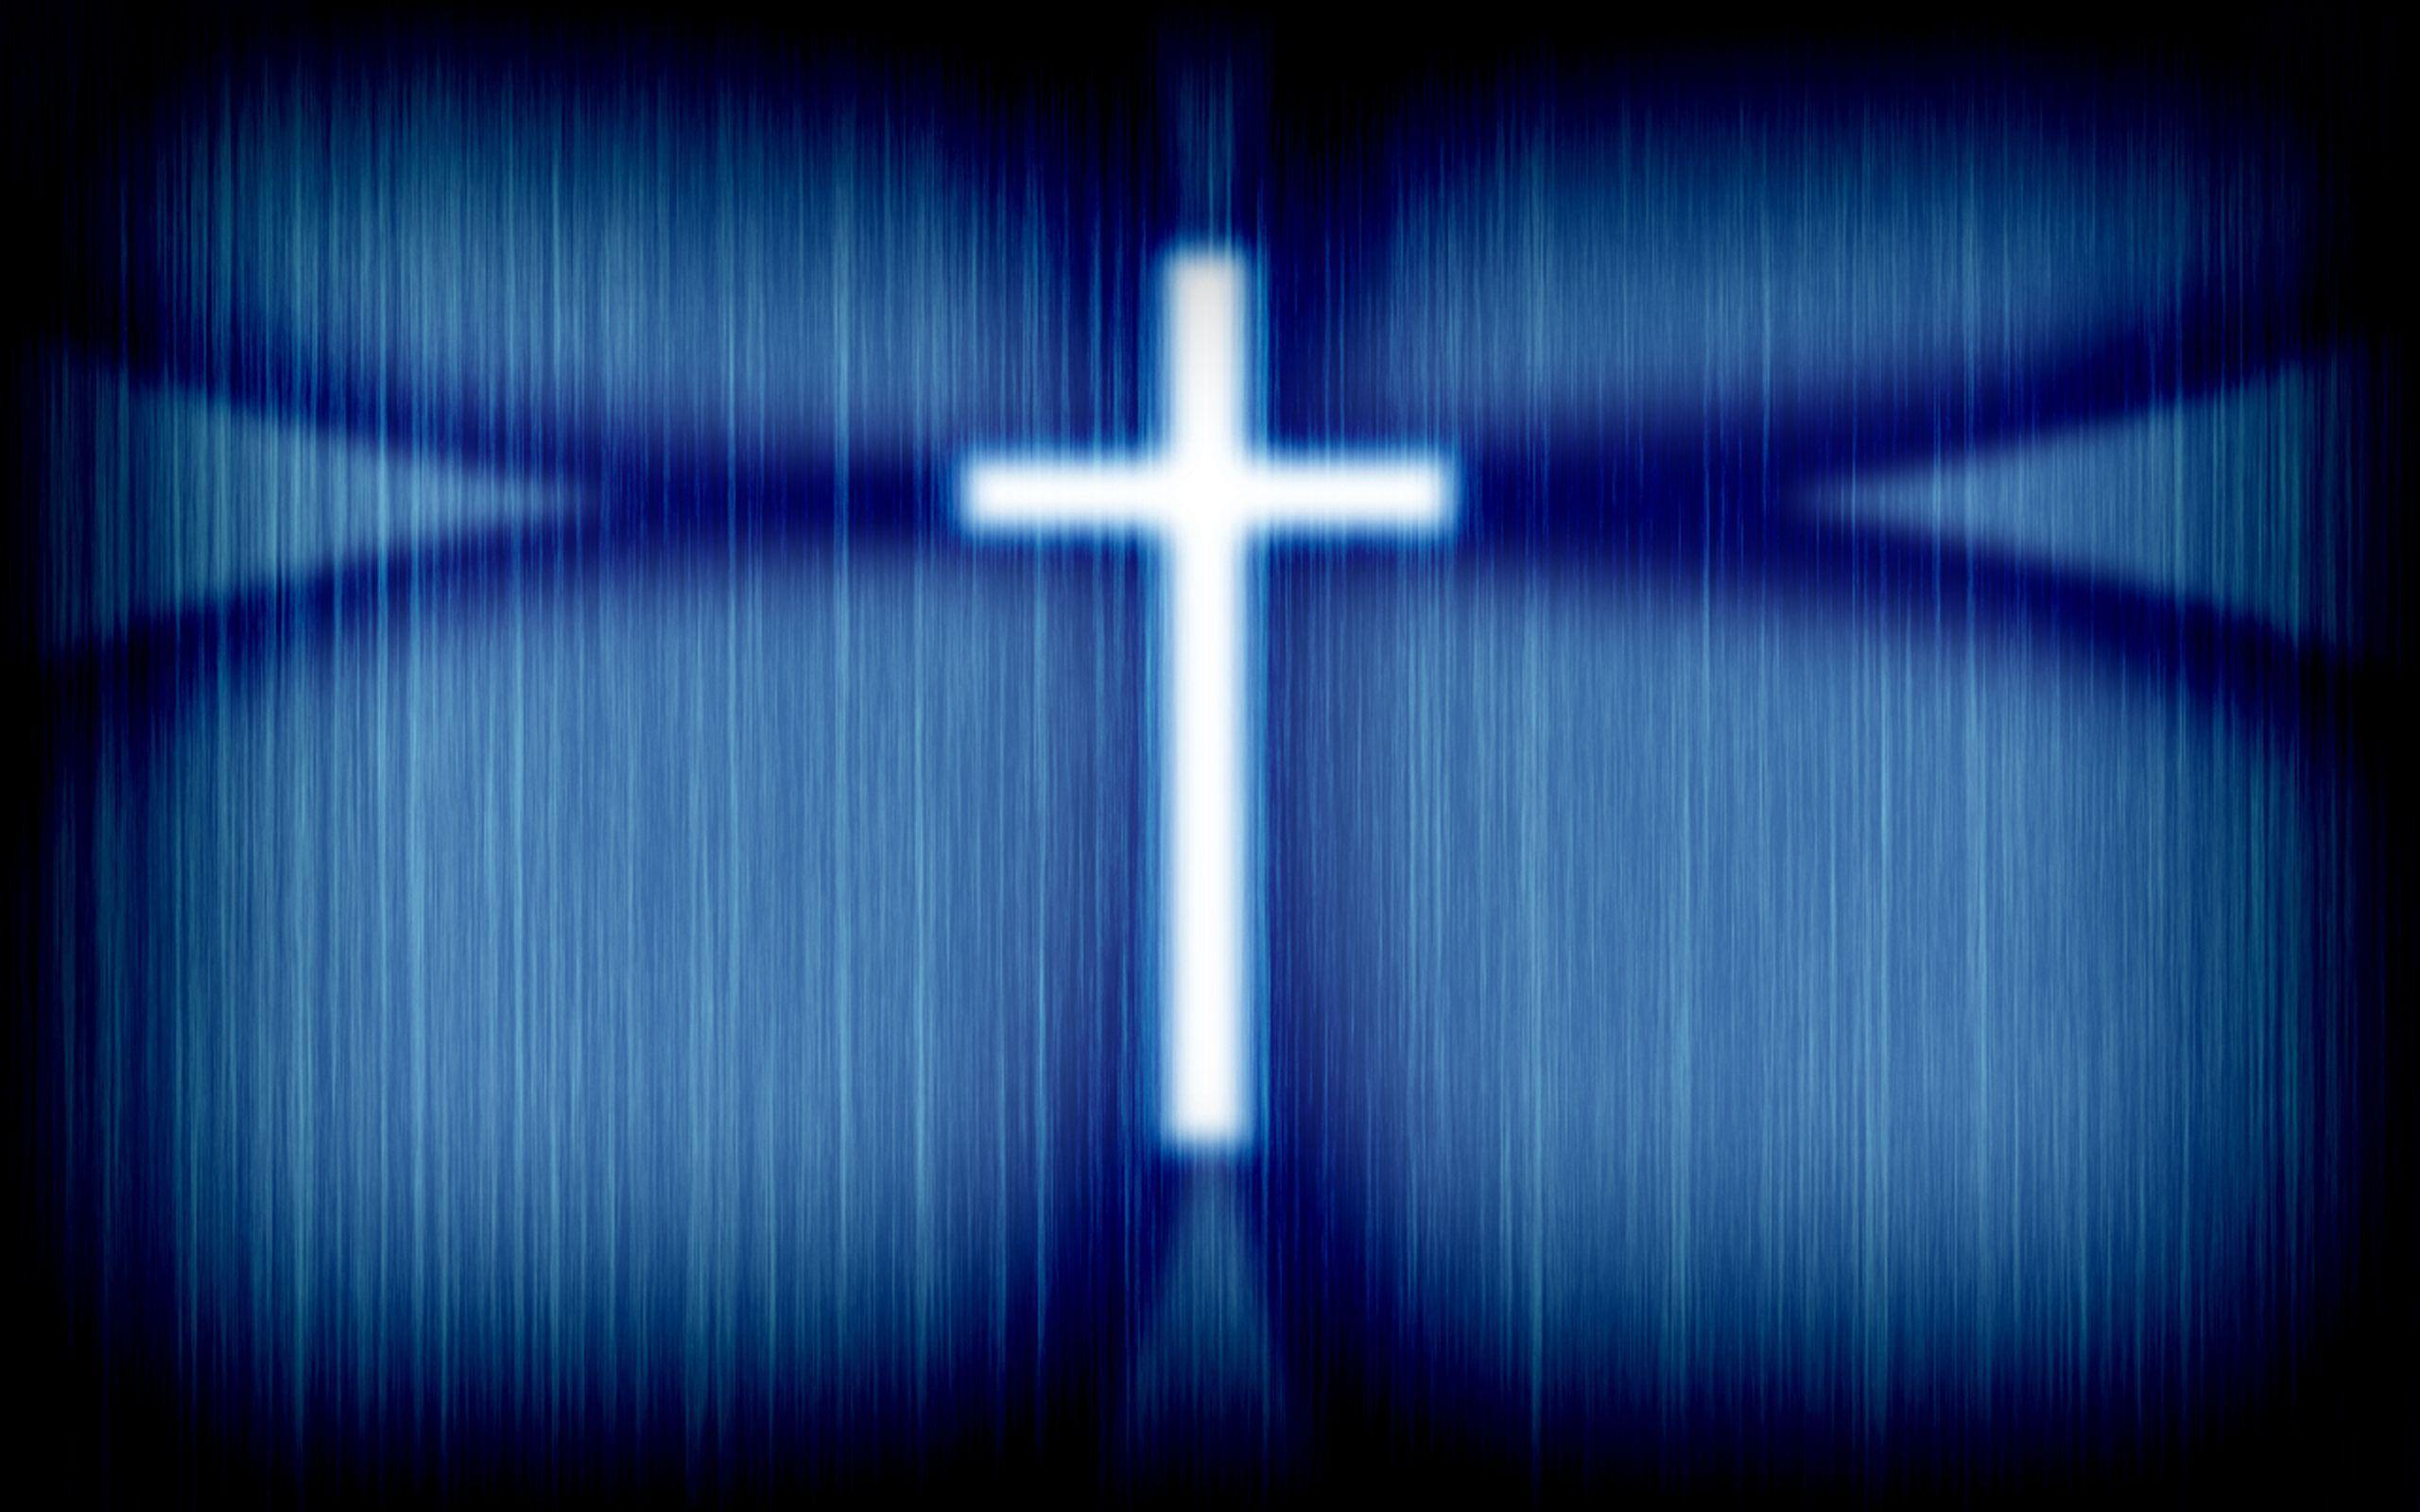 Blue Cross Wallpaper - Christian Wallpapers and Backgrounds